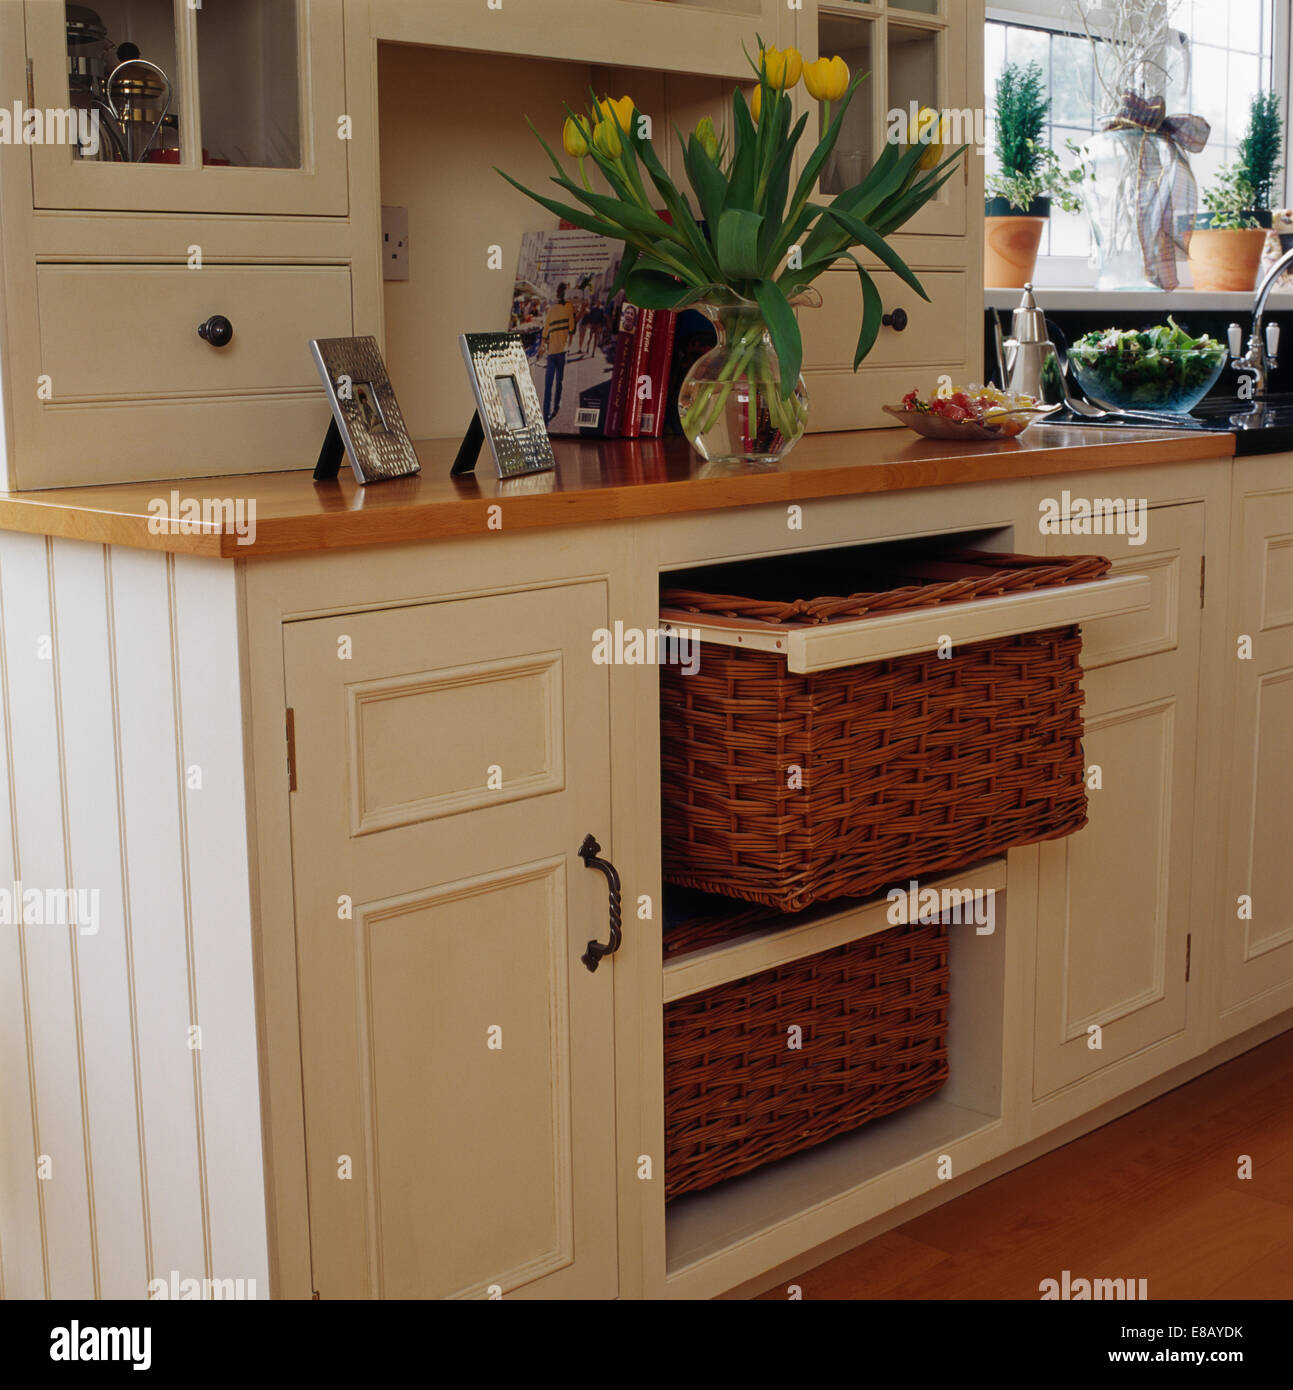 Buy Wicker Storage Basket Kitchen Drawer Style From The: Wicker Storage Baskets On Shelving In Cream Painted Fitted